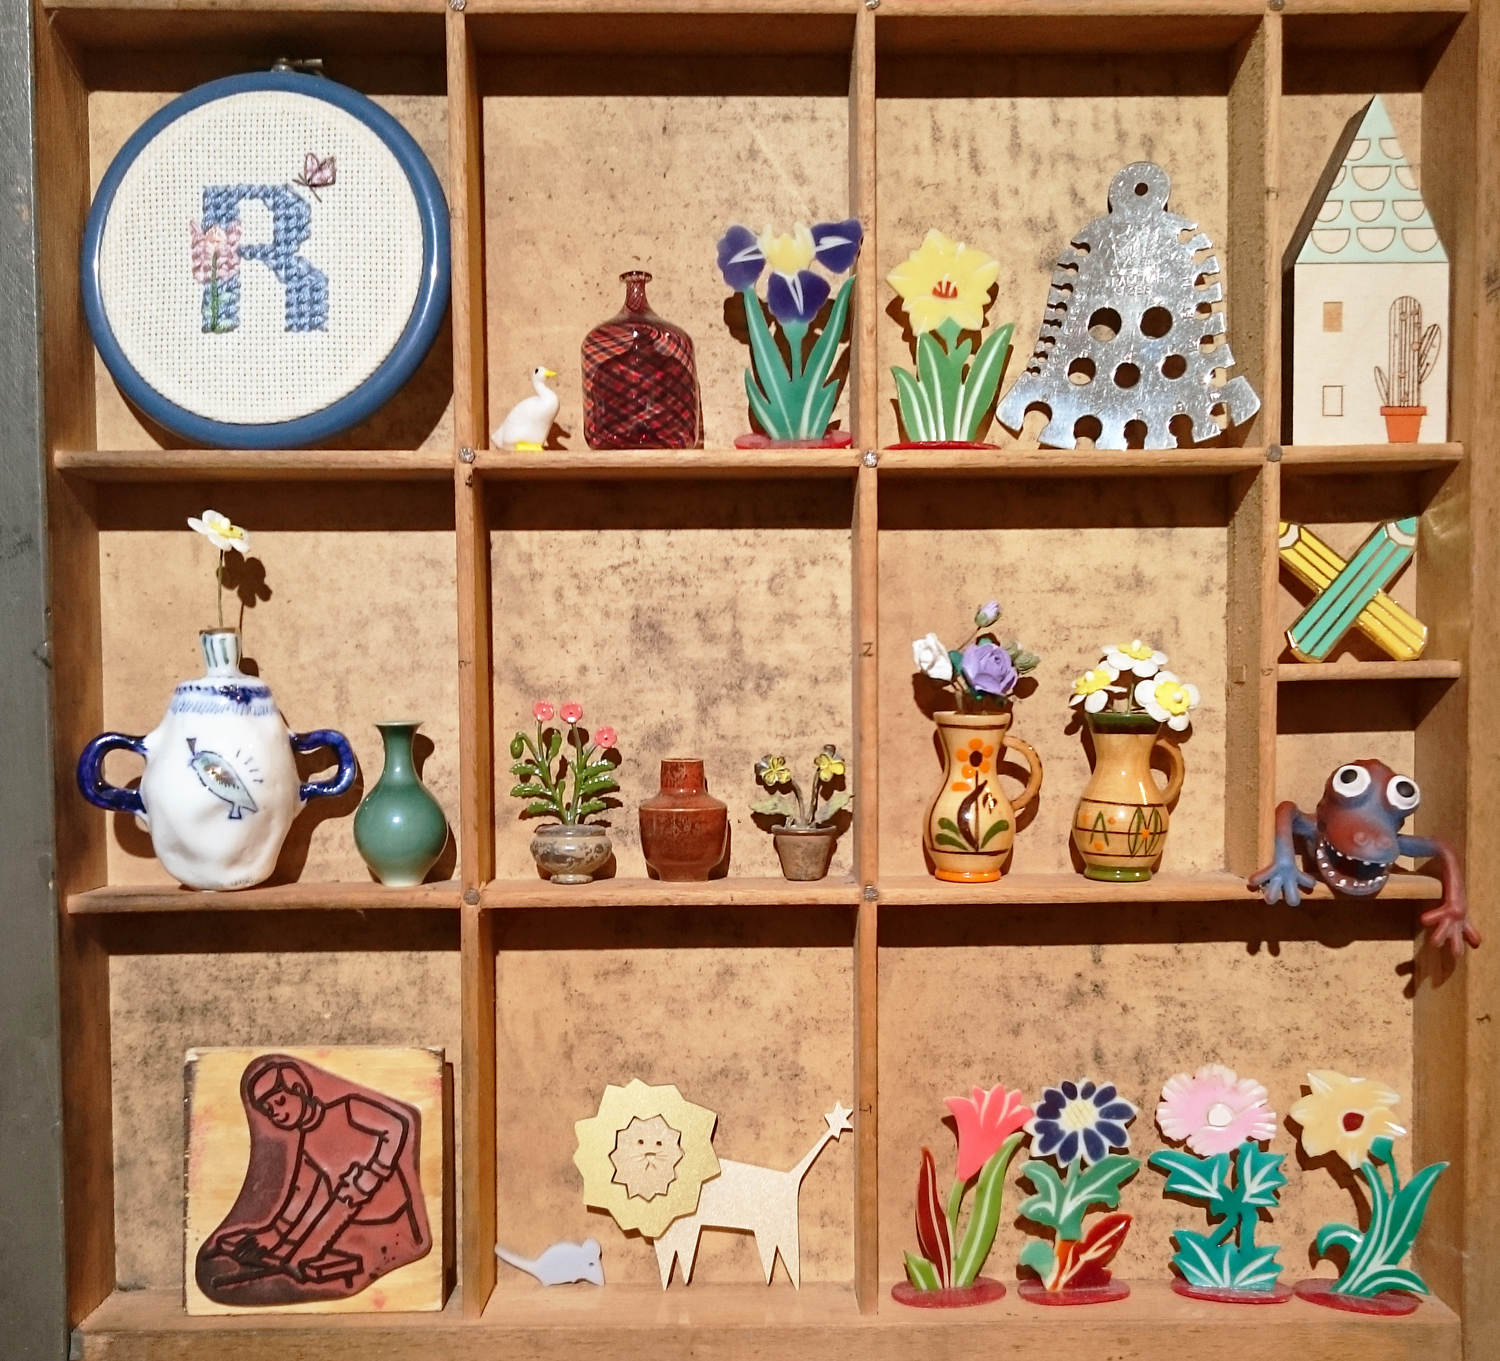 I Am Acrylic's collection of inspiring objects, including: tiny vases, flowers, printing stamps, embroidery, little creatures and more!